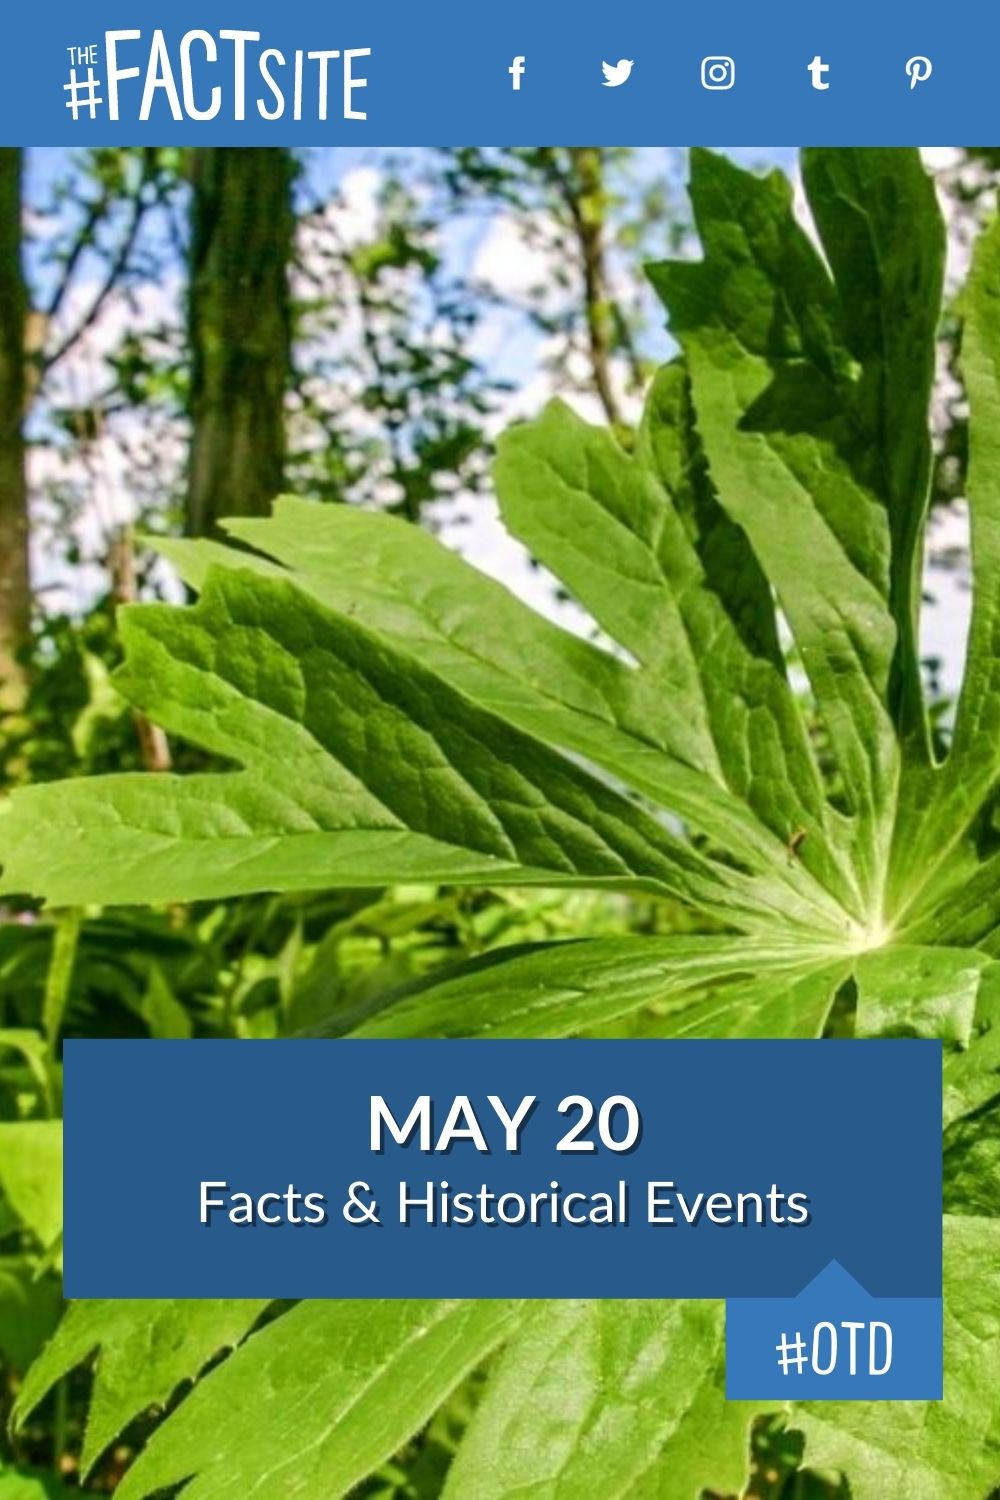 Facts & Historic Events That Happened on May 20